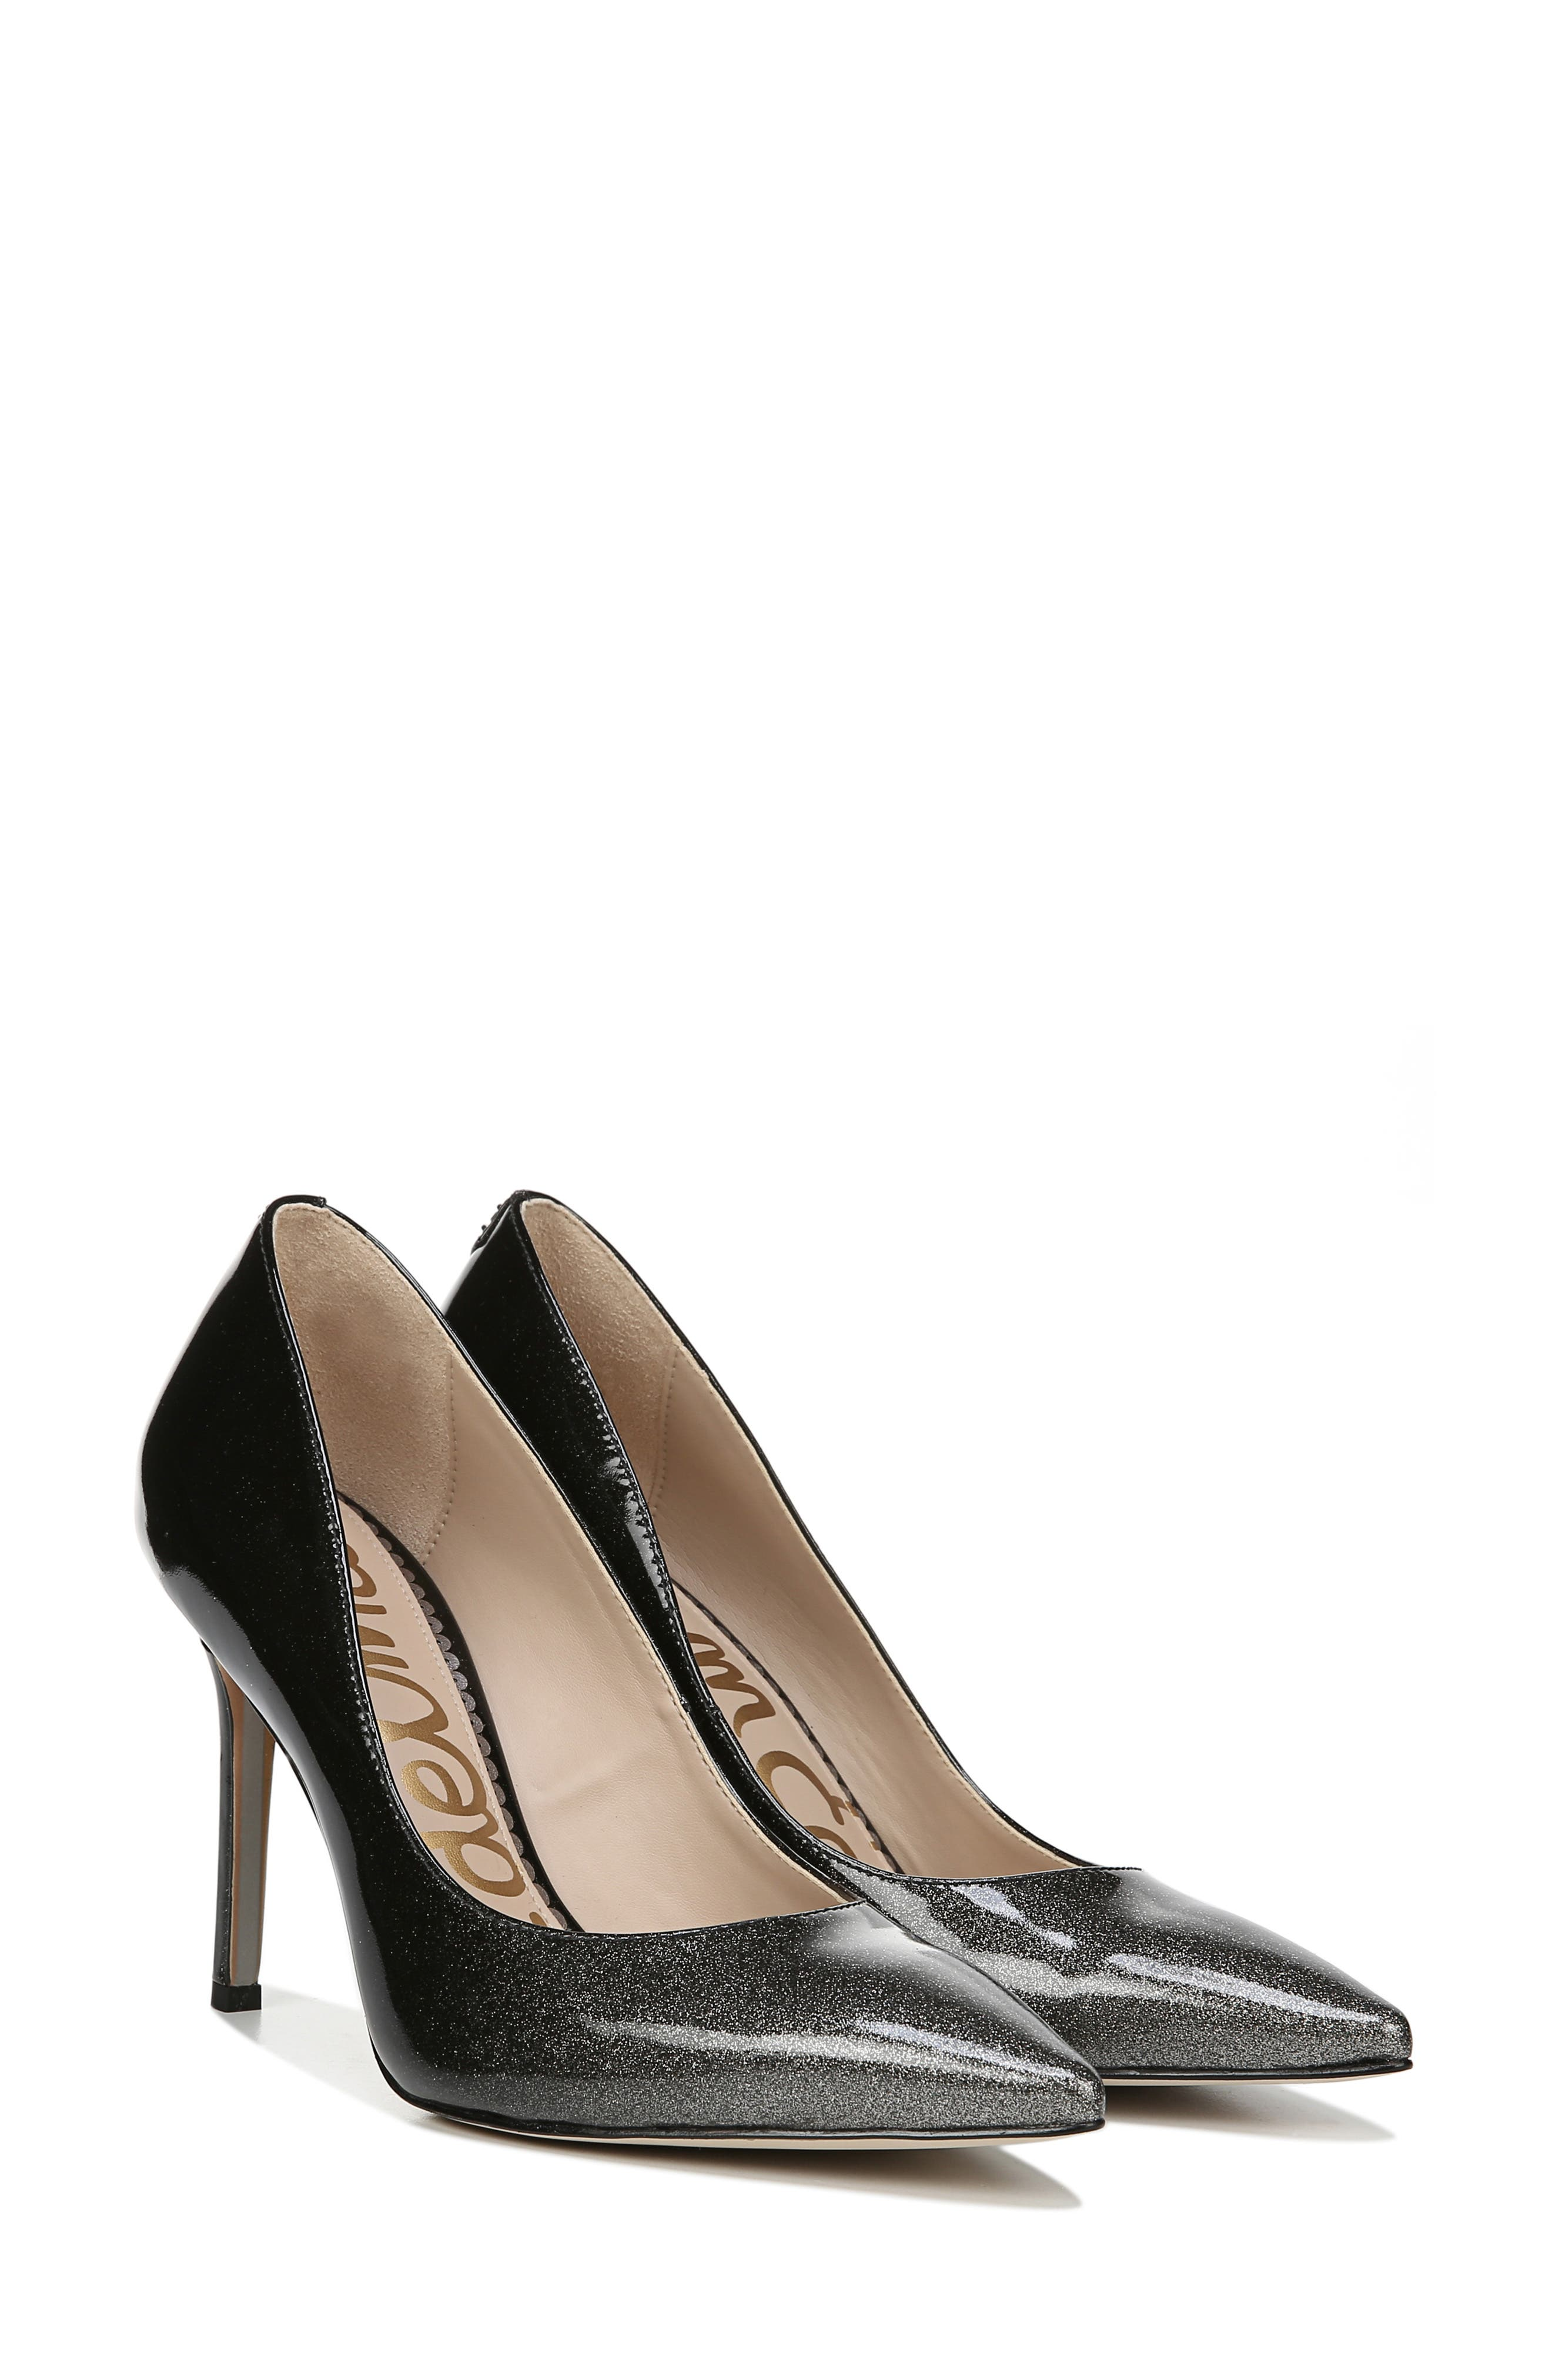 SAM EDELMAN, Hazel Pointy Toe Pump, Alternate thumbnail 7, color, BLACK/ SILVER